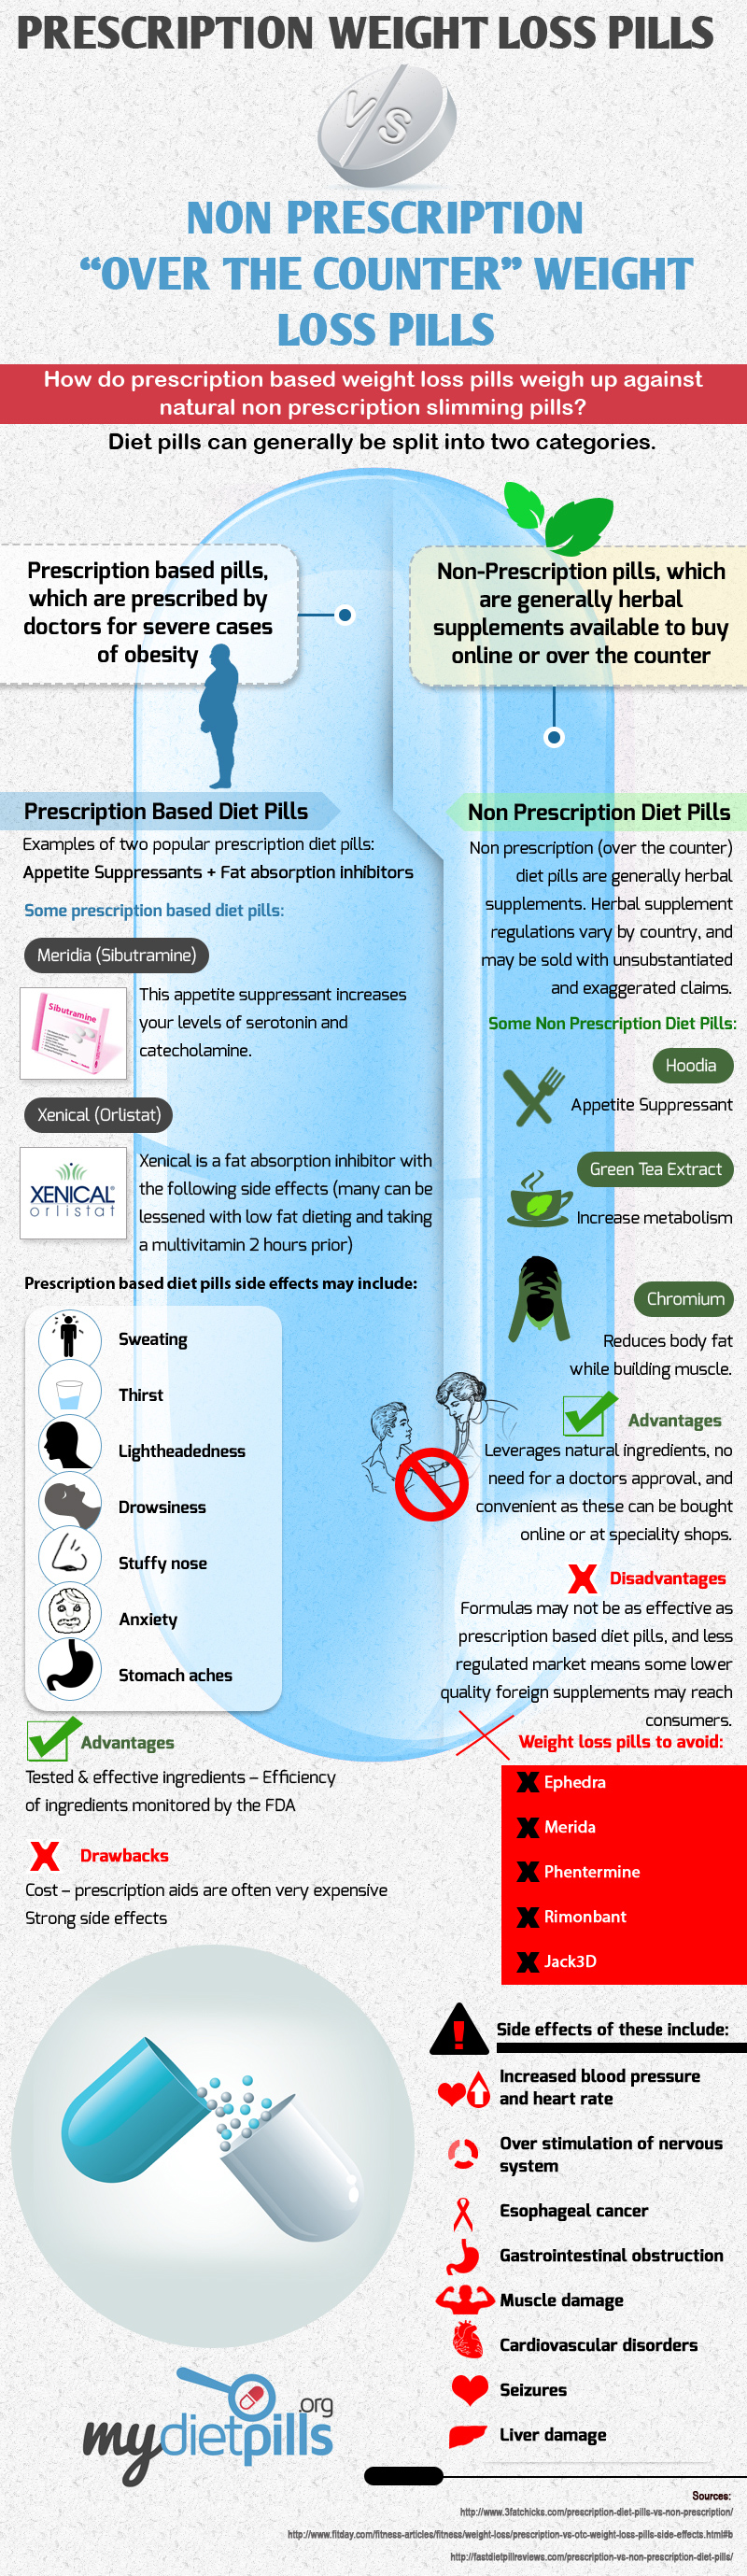 prescription-vs-non-prescription-infographic